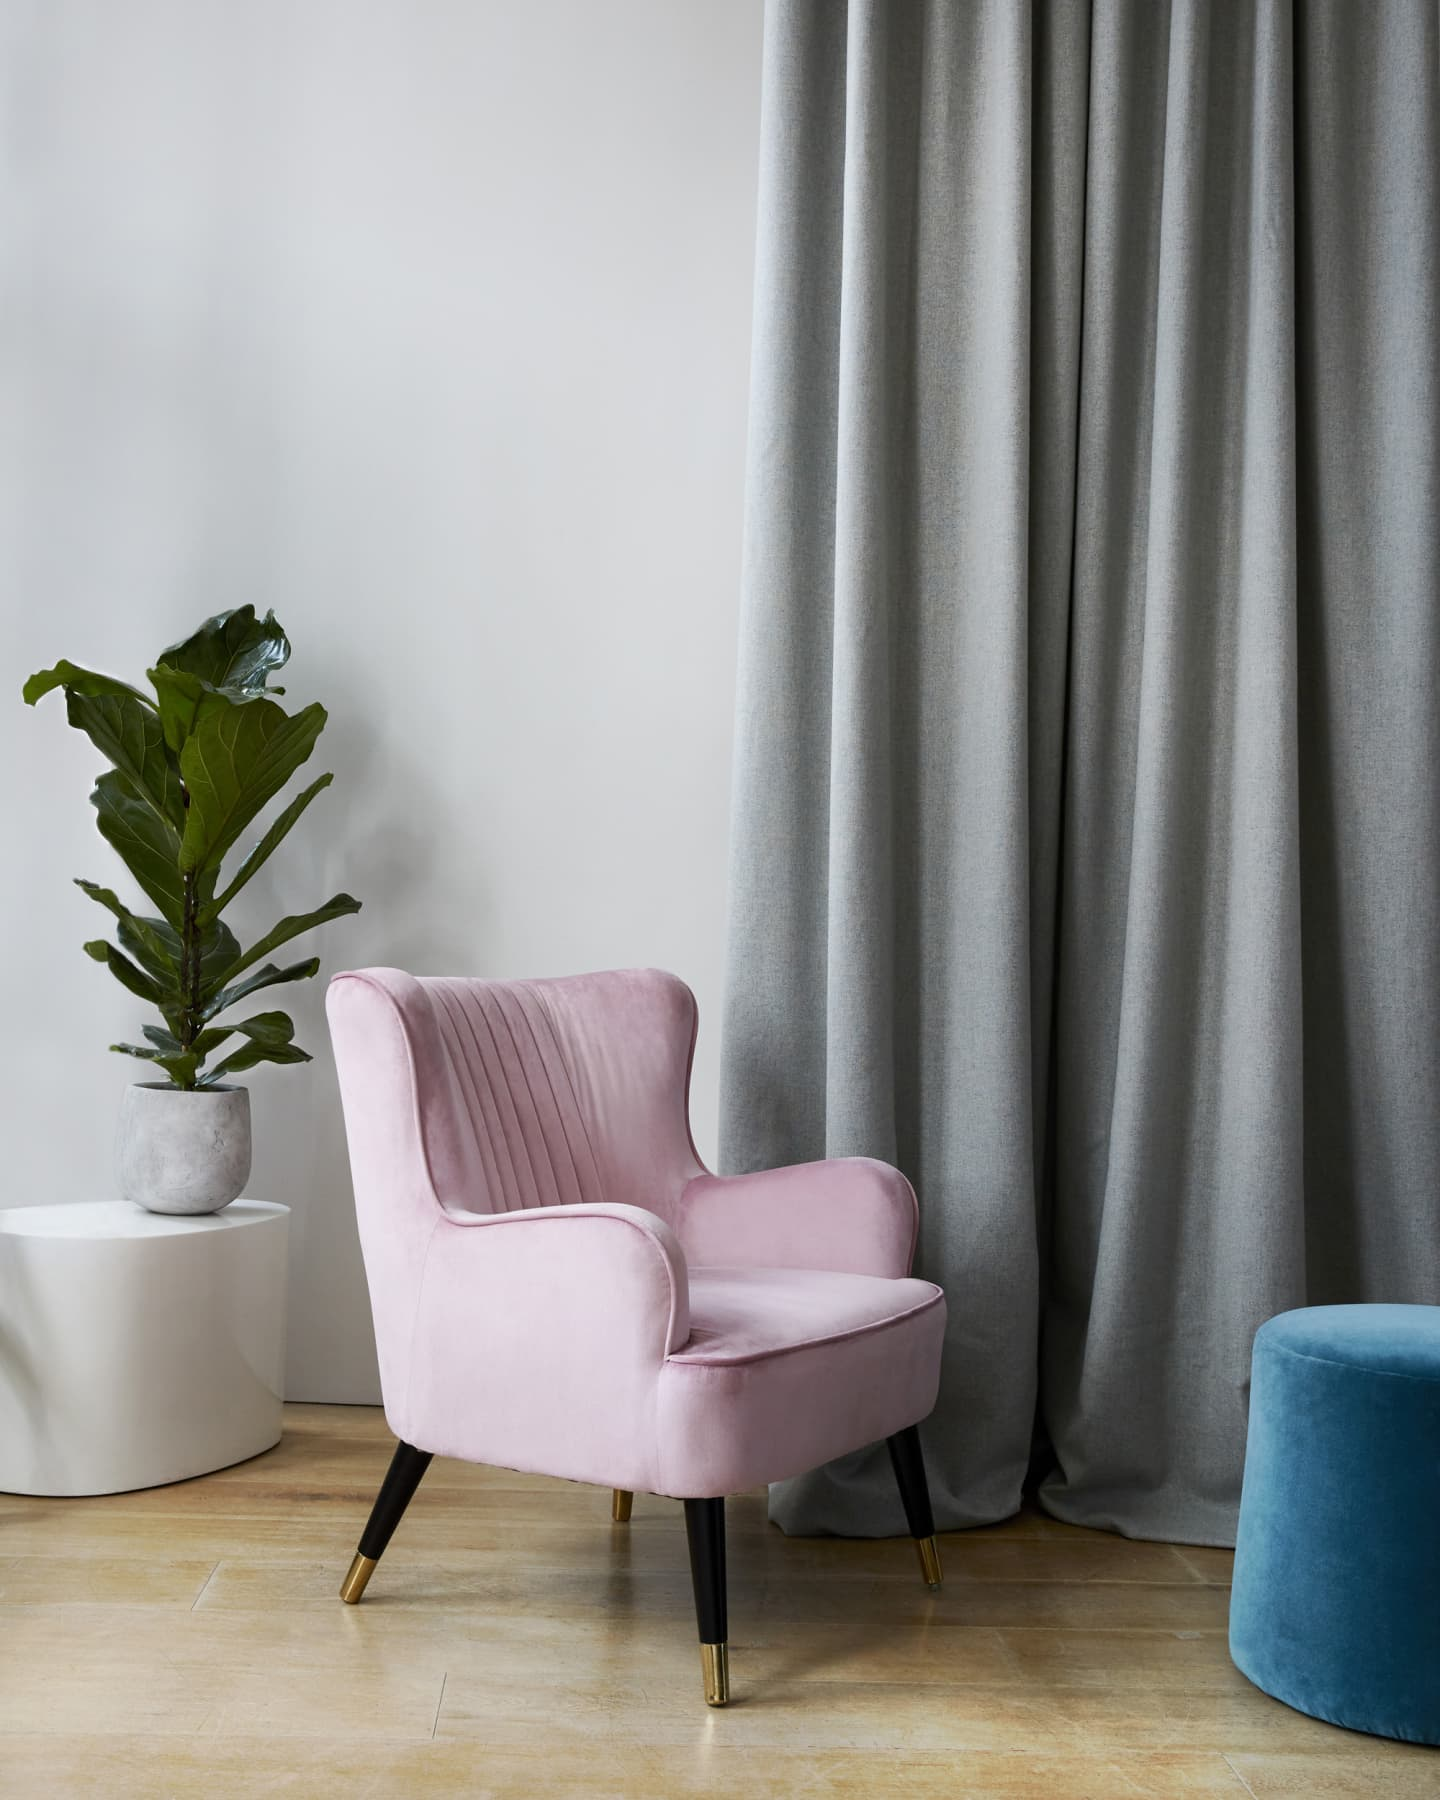 pink chair and plant in front of grey curtain